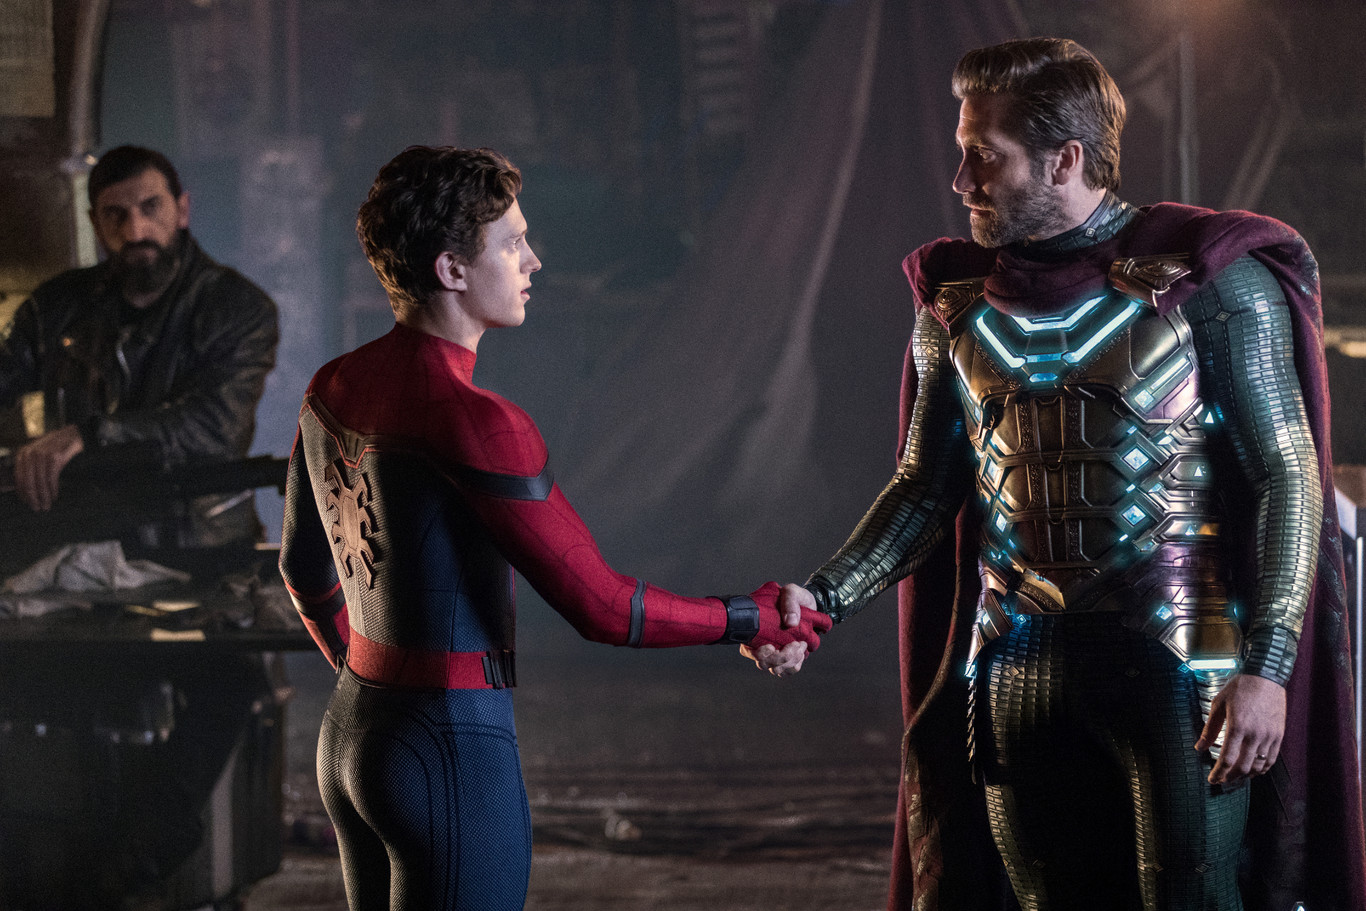 Mira a Mysterio salvar a Peter Parker en una nueva escena de Spider-Man: Far From Home